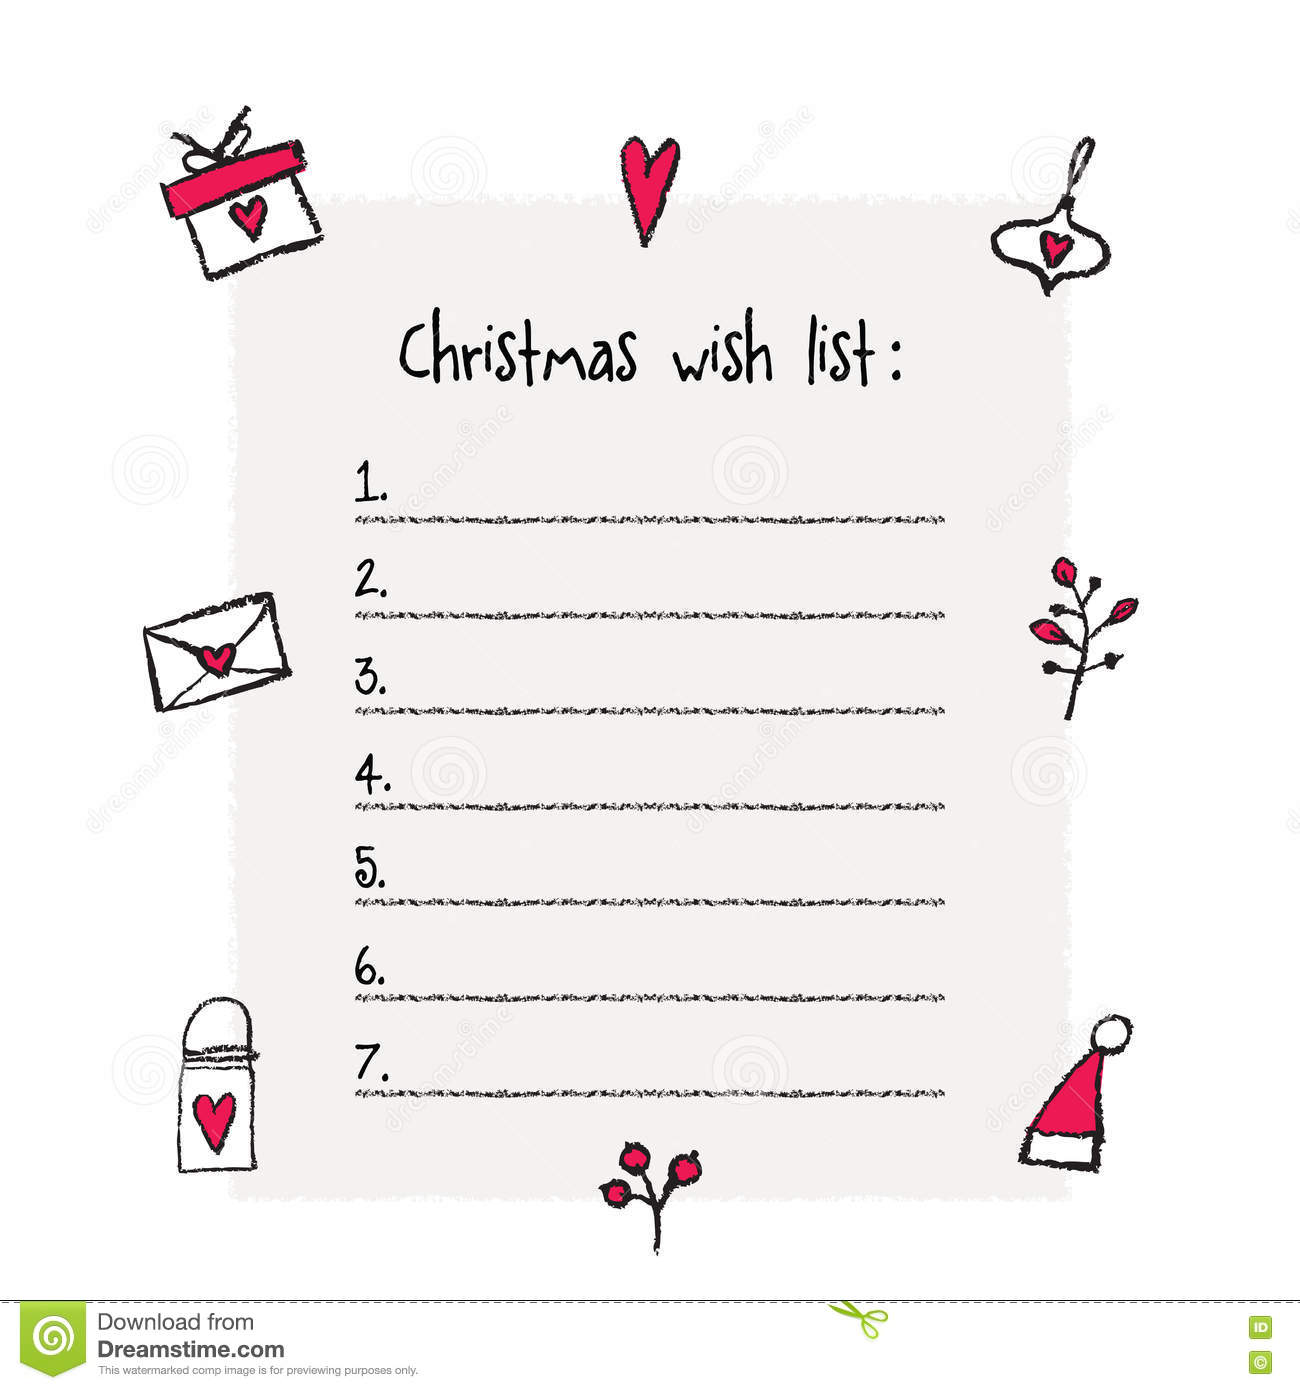 Christmas Wish List Template use of event gift gift christmas – Free Printable Christmas Wish List Template